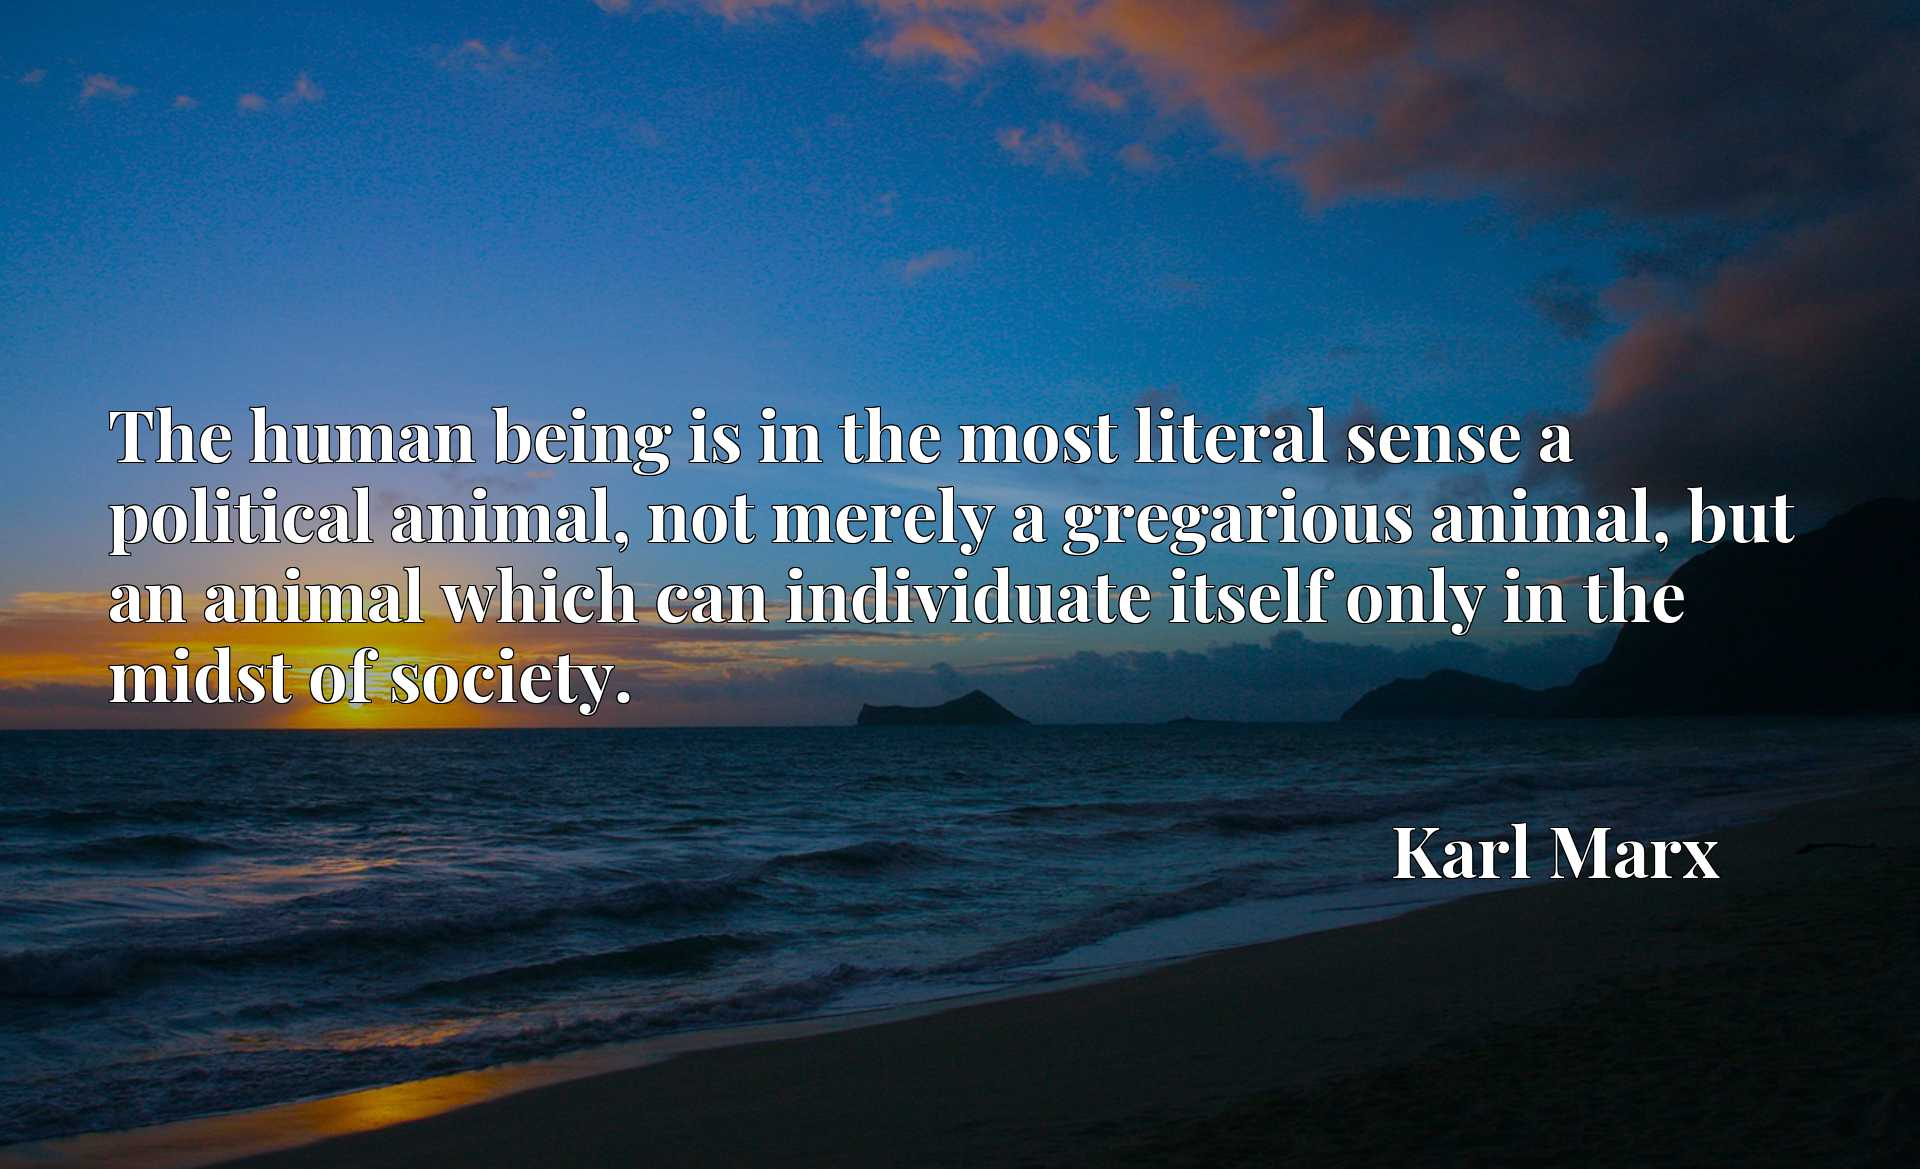 The human being is in the most literal sense a political animal, not merely a gregarious animal, but an animal which can individuate itself only in the midst of society.